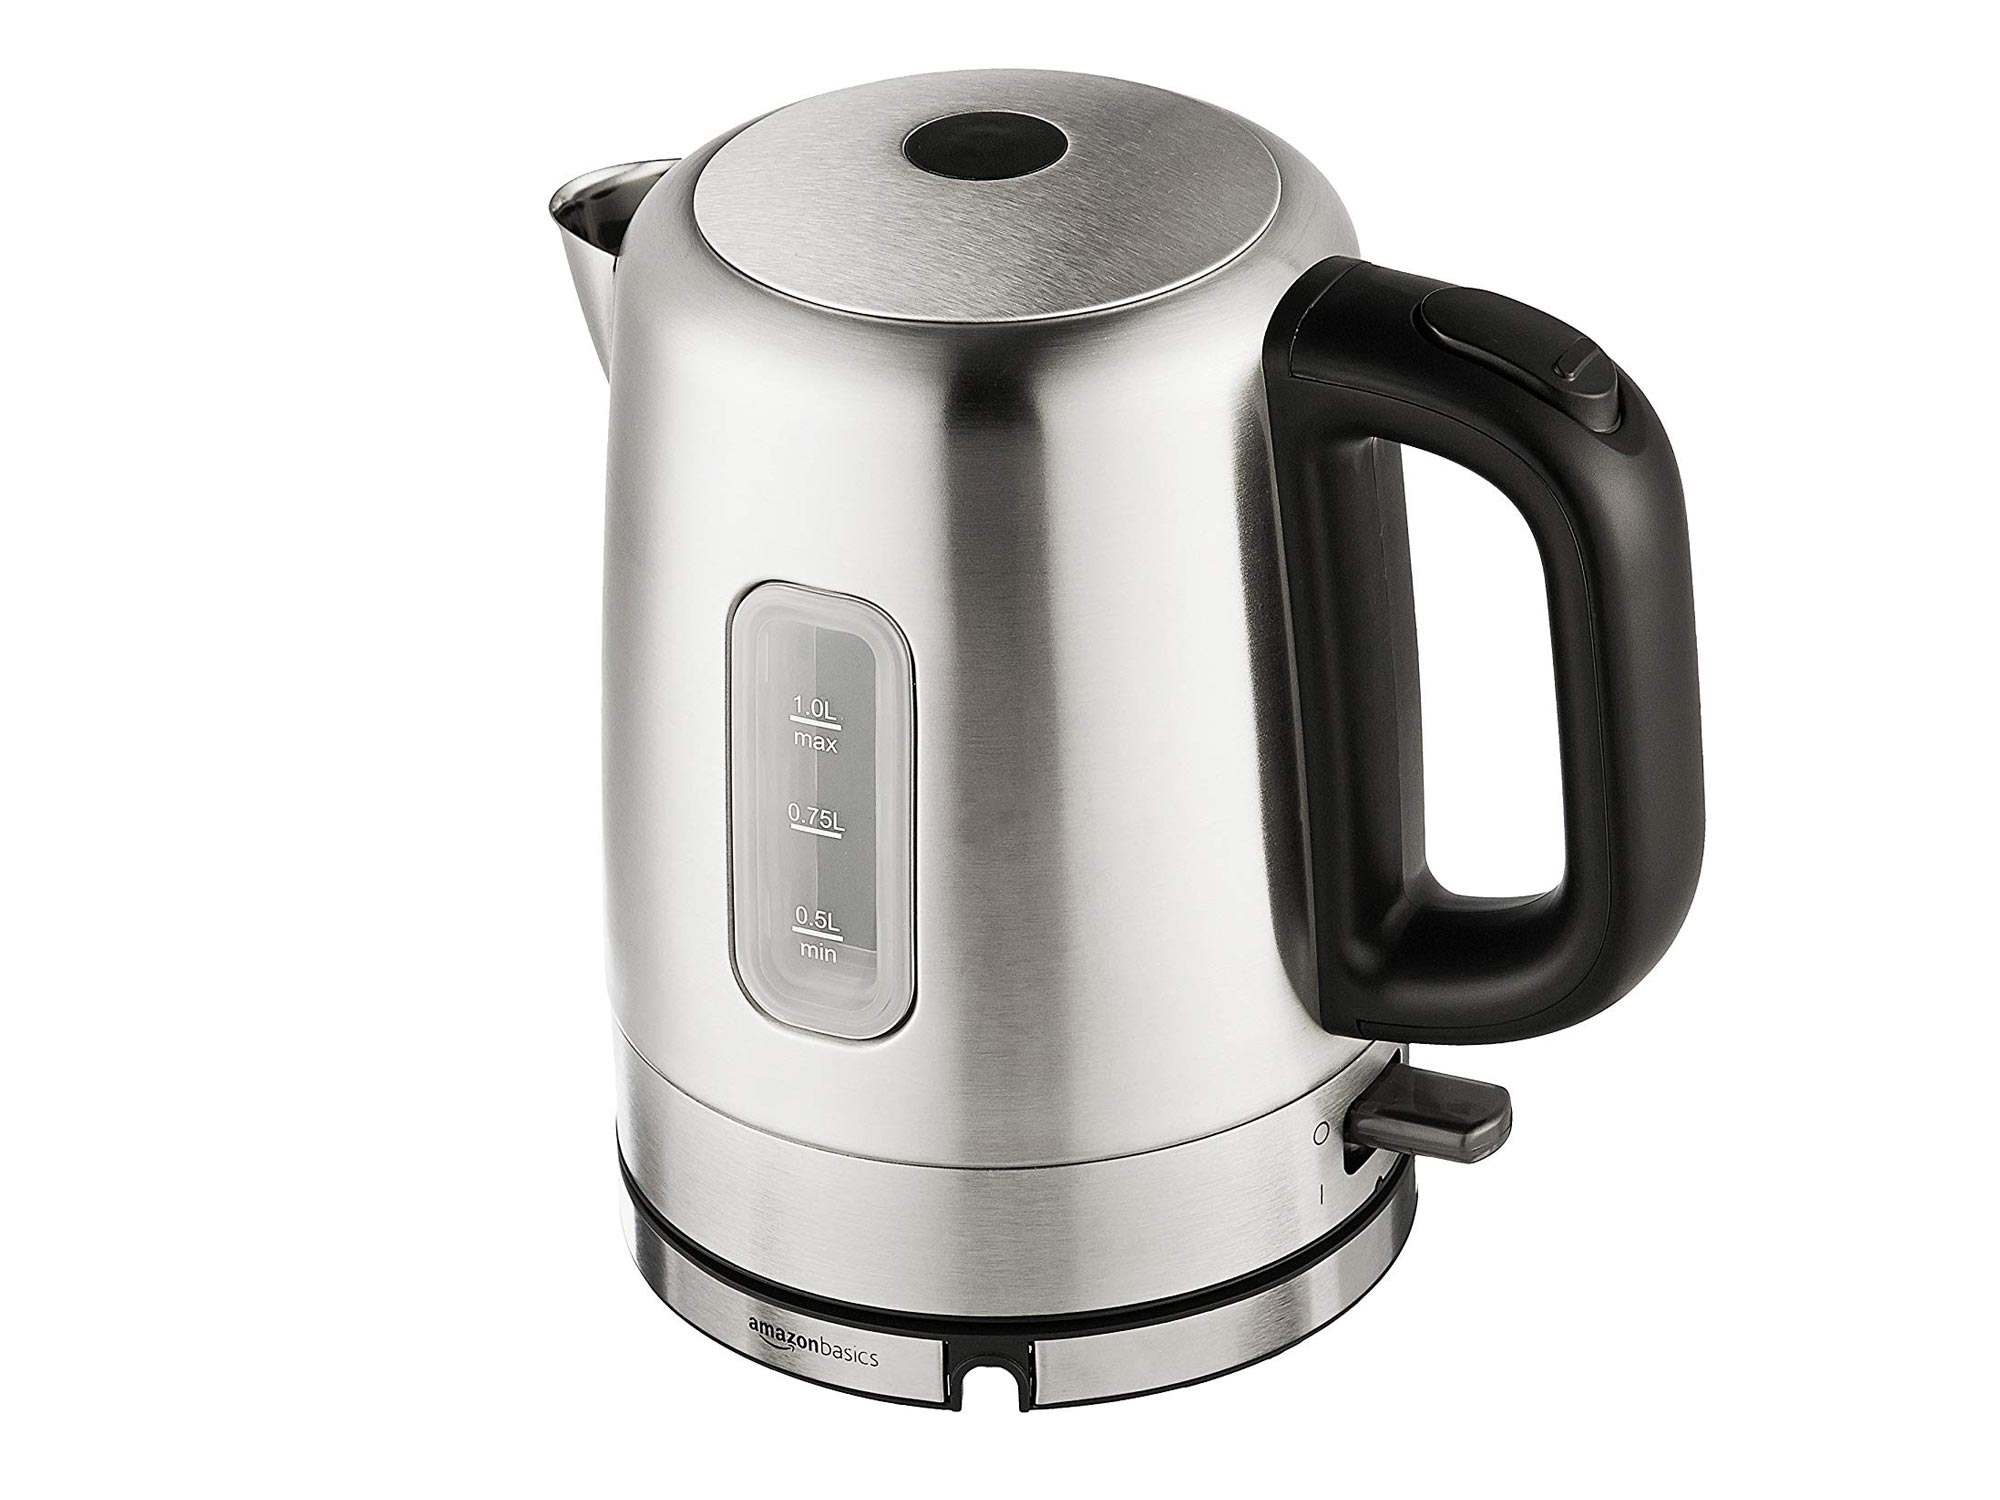 AmazonBasics Stainless Steel Portable Fast, Electric Hot Water Kettle for Tea and Coffee, 1 Liter, Silver